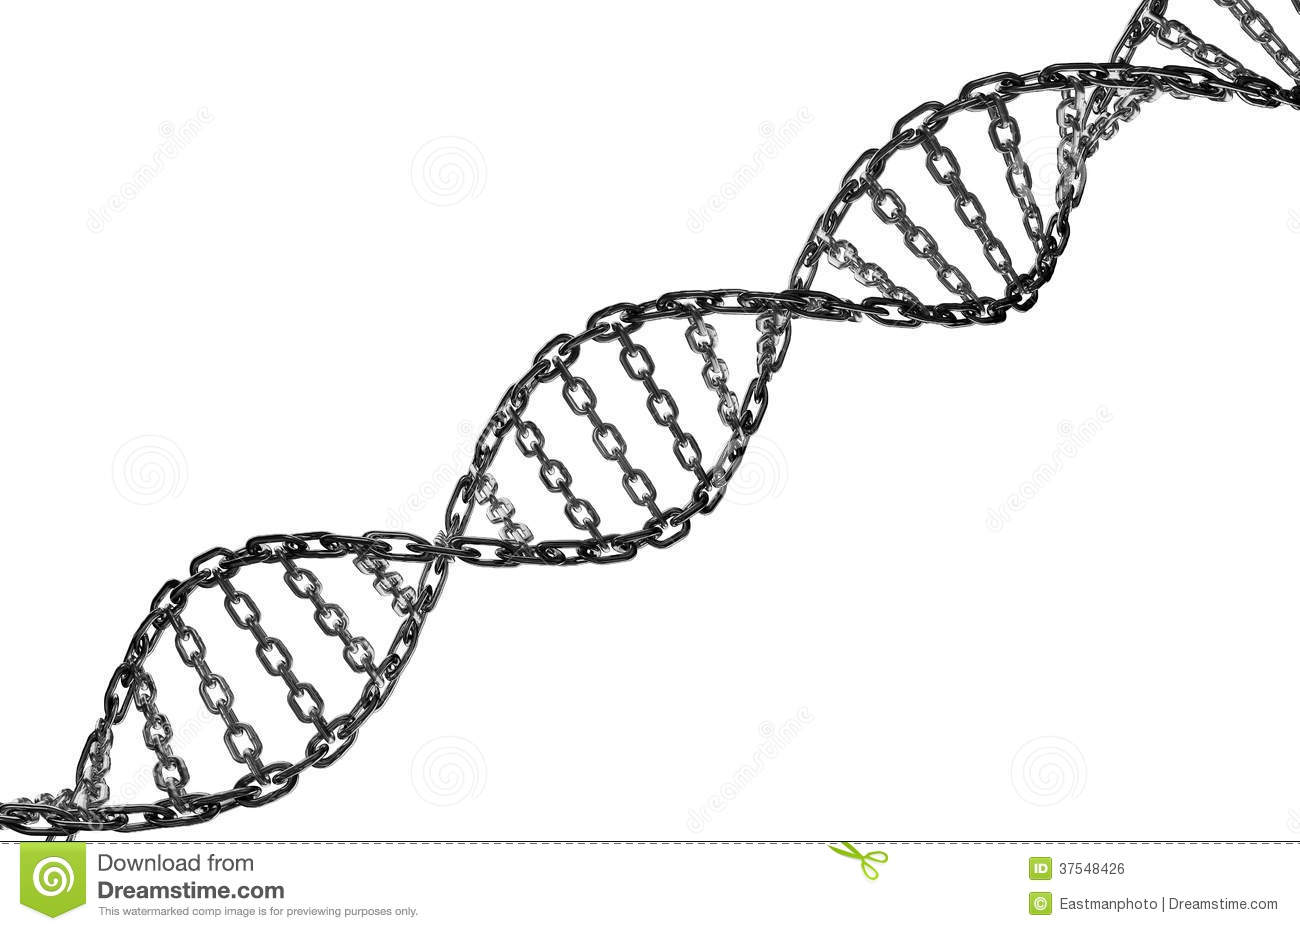 dna-helix-metal-chain-link-37548426.jpg